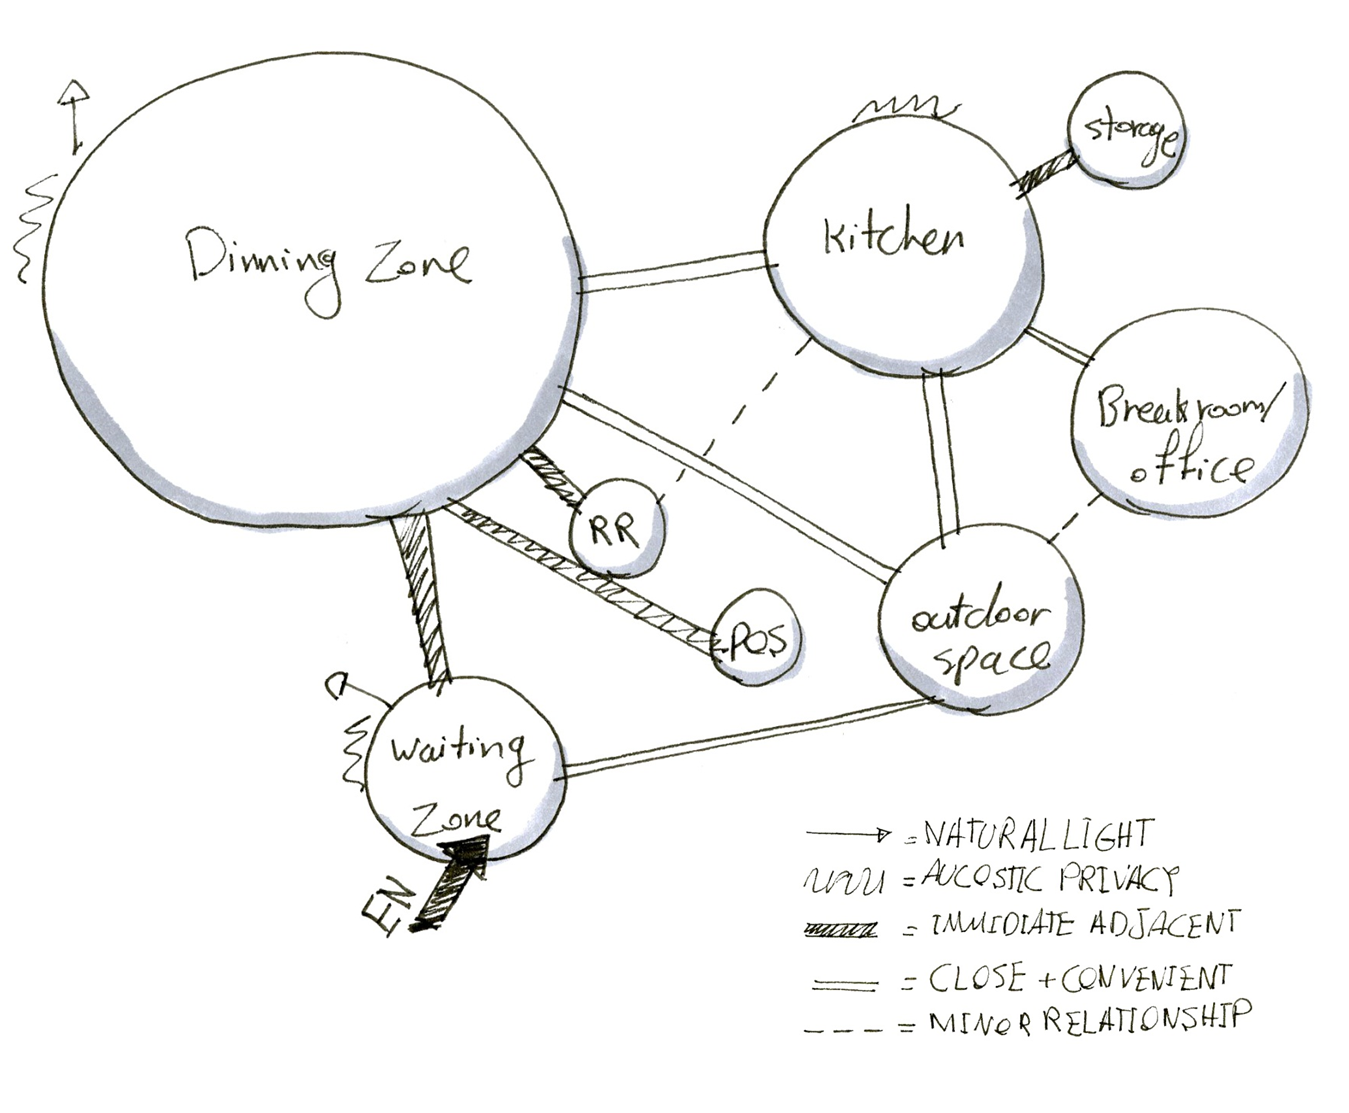 small resolution of this bubble diagram for restaurant depicts various spaces in restaurant whcih includes arrival front of house and back of house